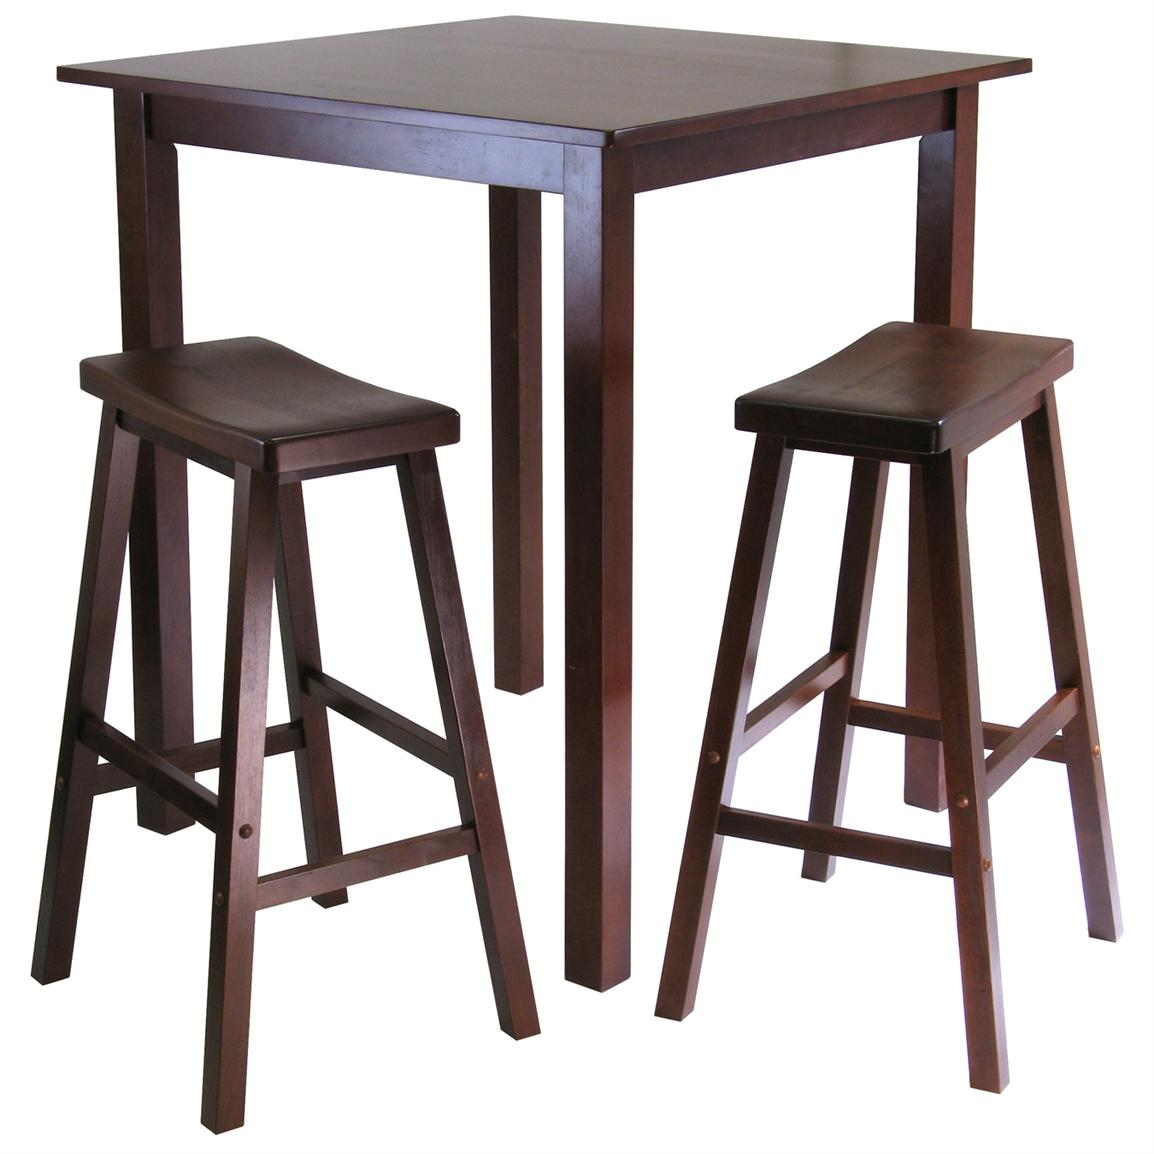 Bar Stools And Tables: Comfortable Pub Tables And Stools For Interesting Home